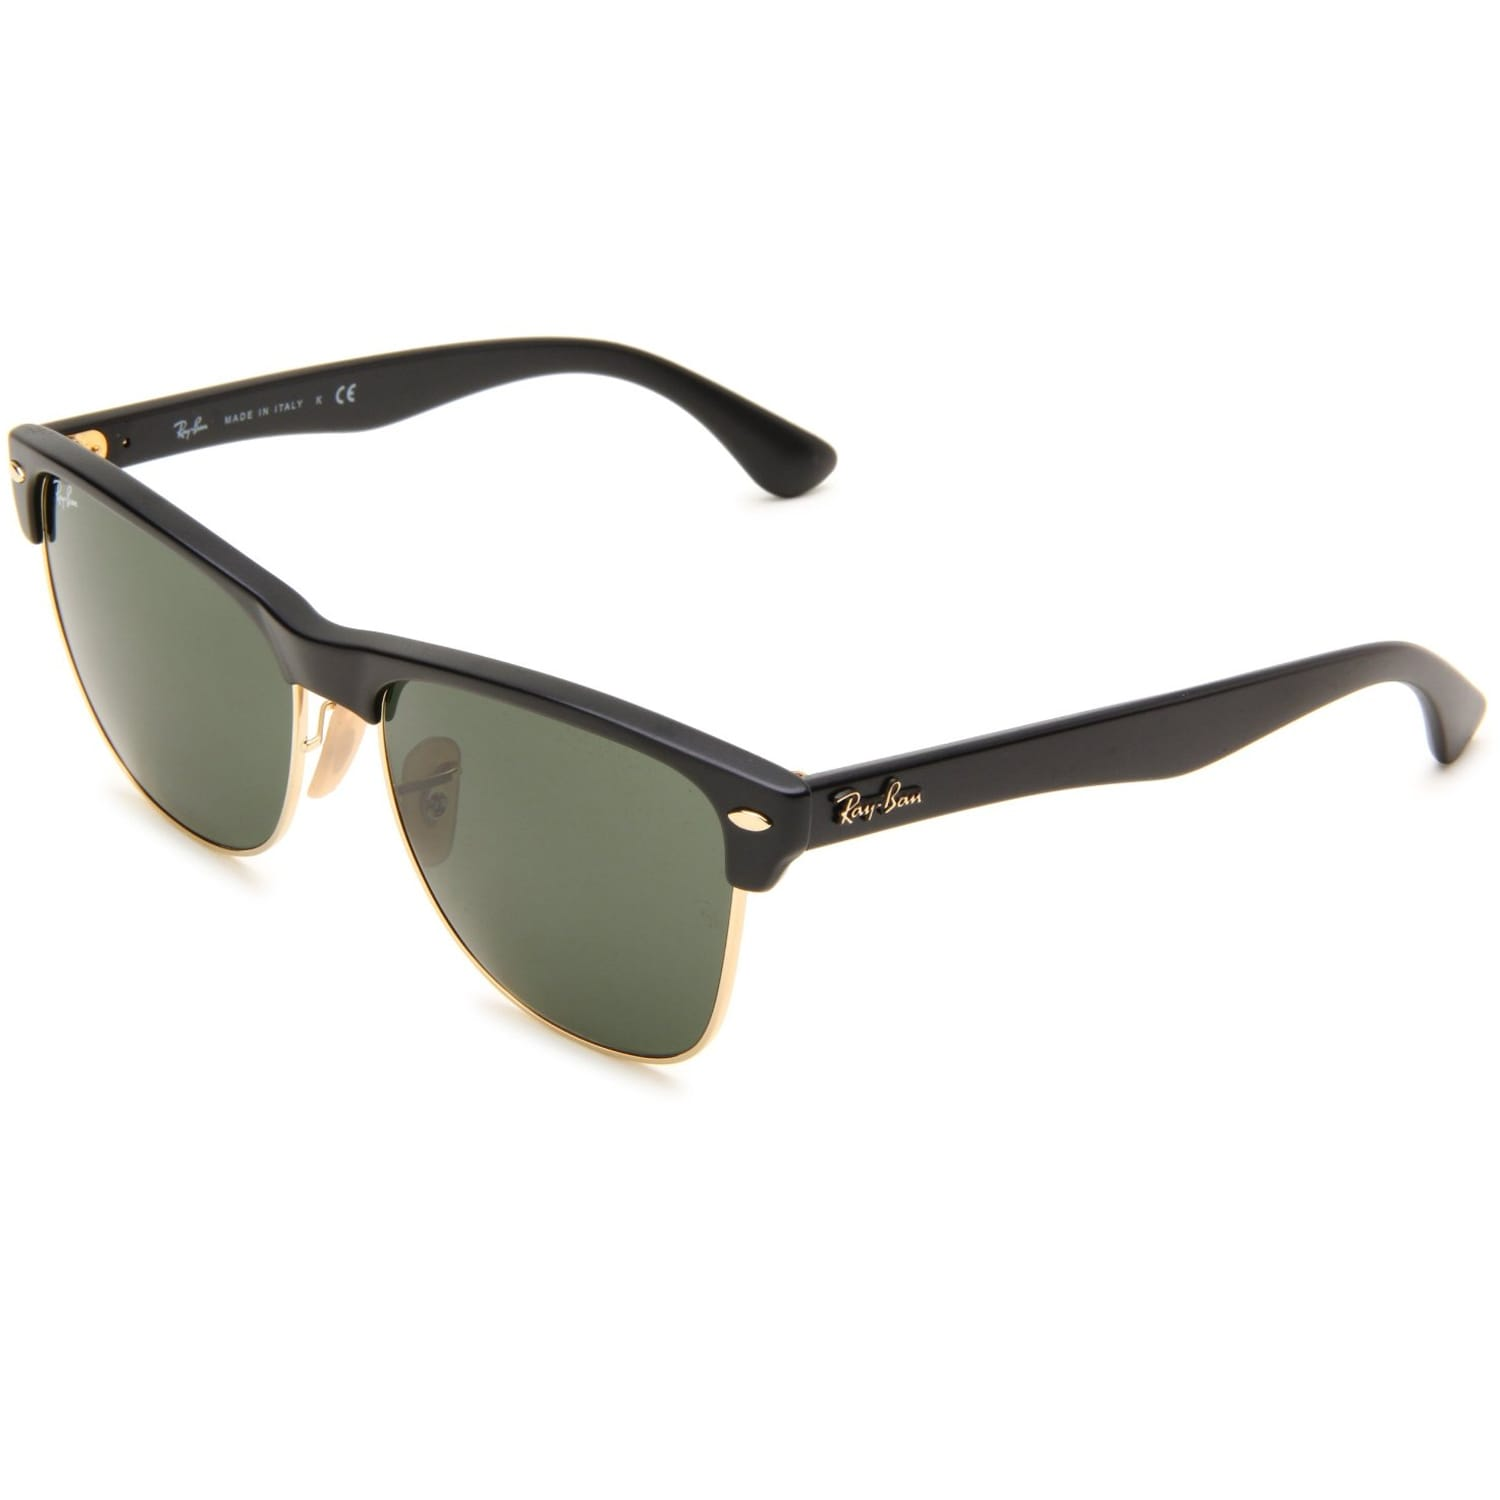 c83bf84975 Shop Ray-Ban Women s  Clubmaster  Matte Black Wayfarer Sunglasses - Free  Shipping Today - Overstock - 7647381